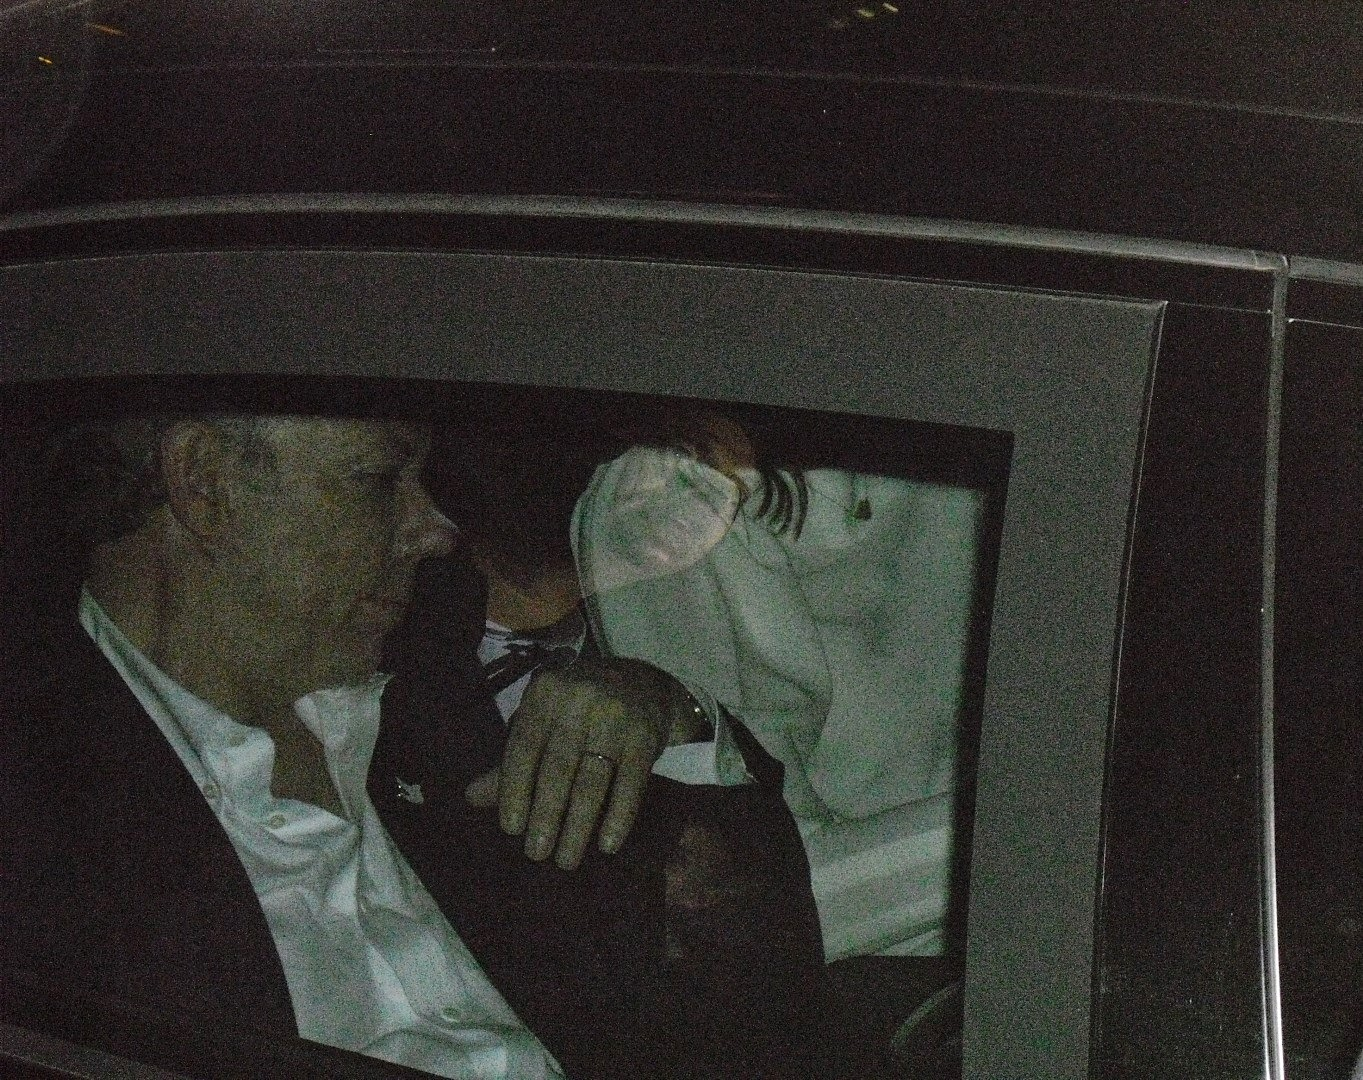 Colombian President Juan Manuel Santos heads off into the night after his re-election victory speech.